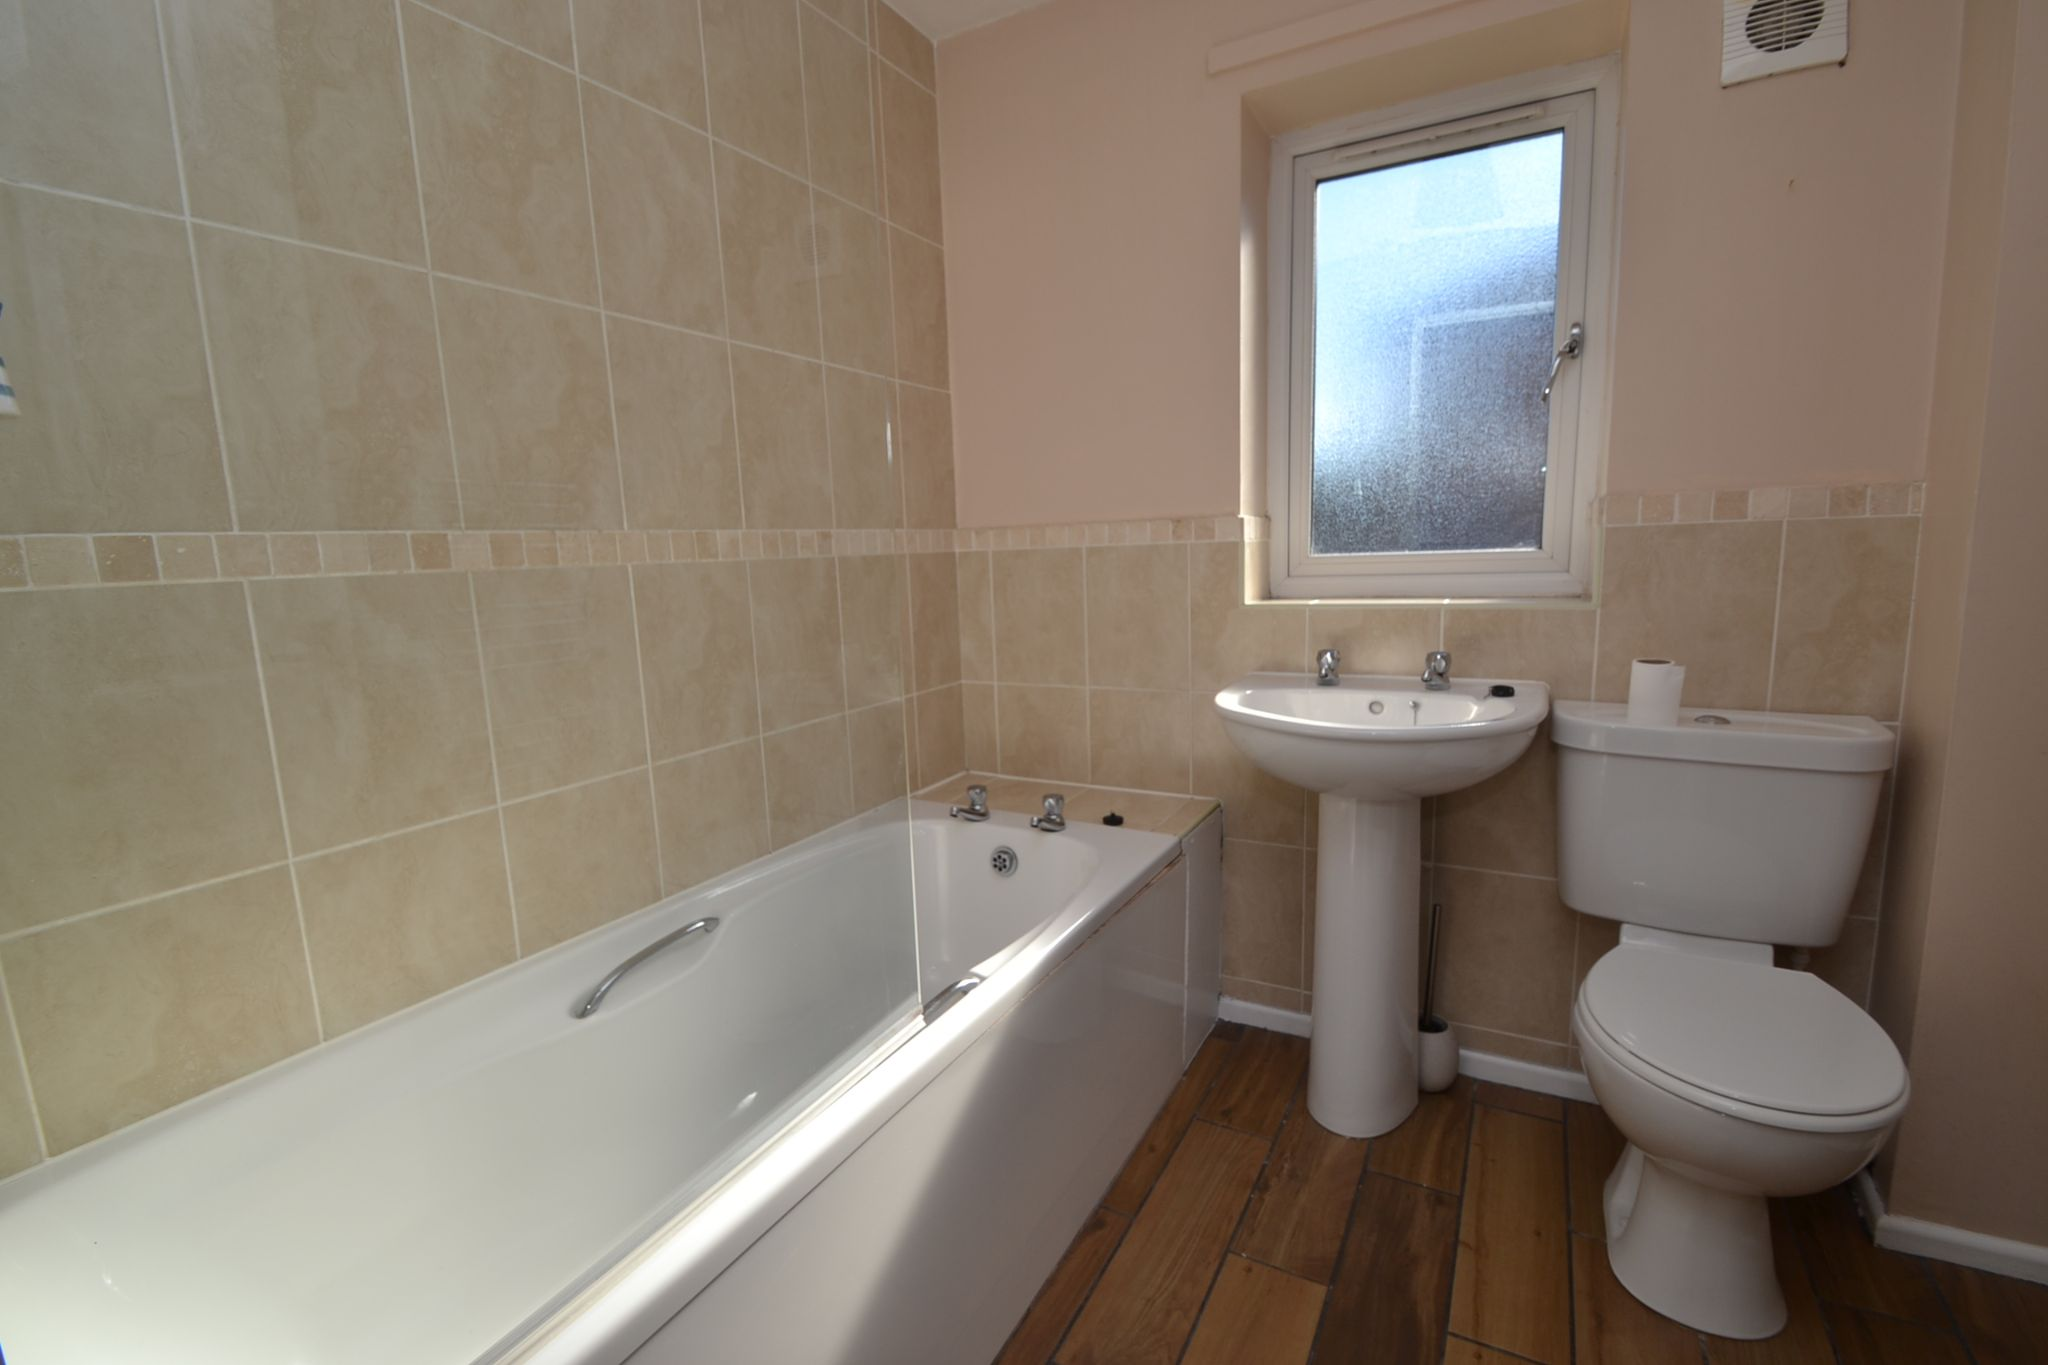 4 Bedroom Semi-detached House For Sale - Photograph 16